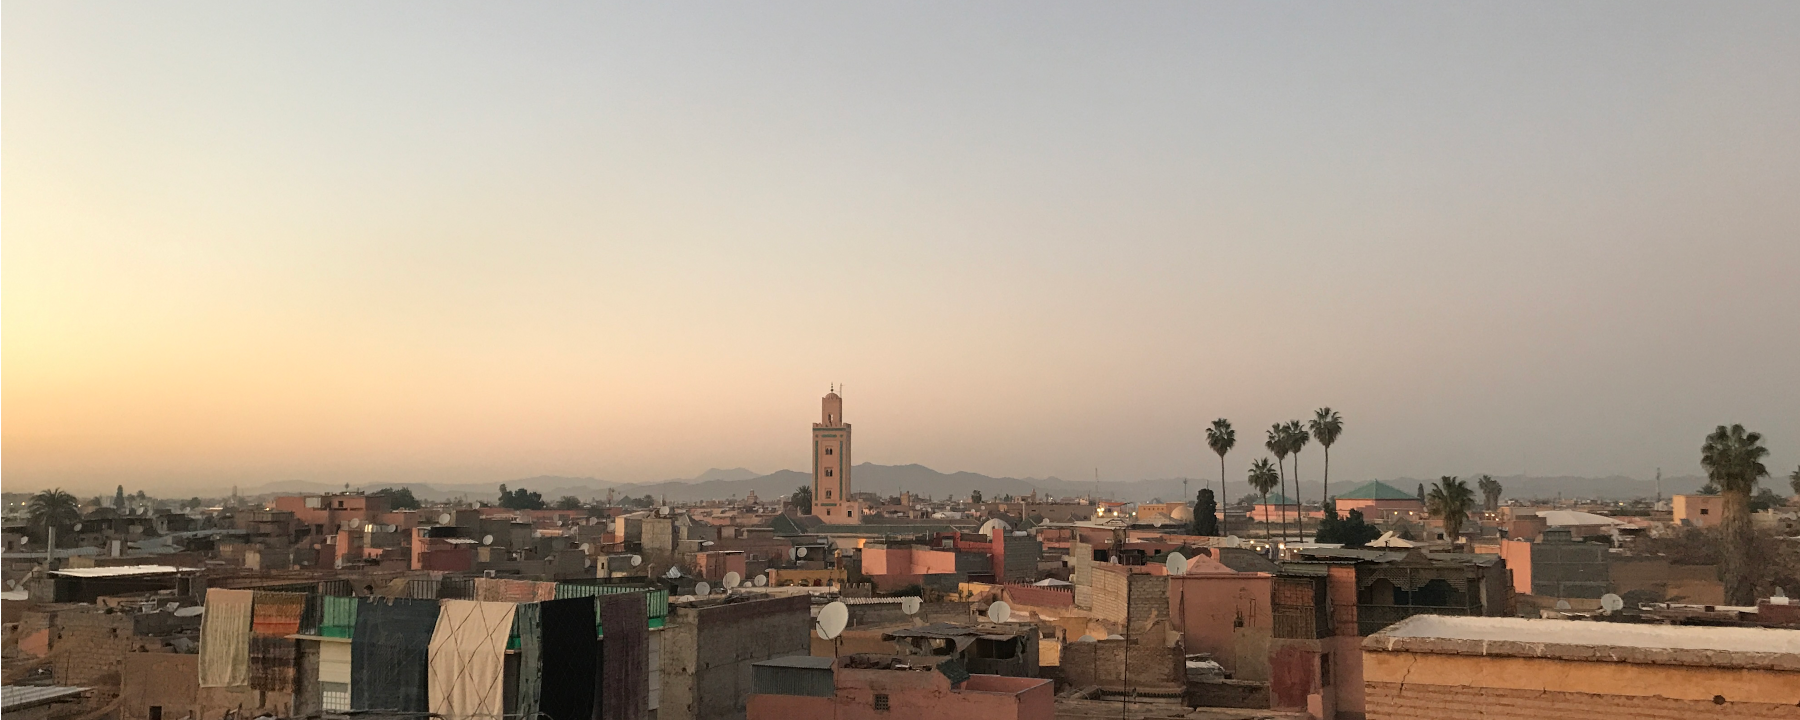 Marrakech_Source-NOSADE